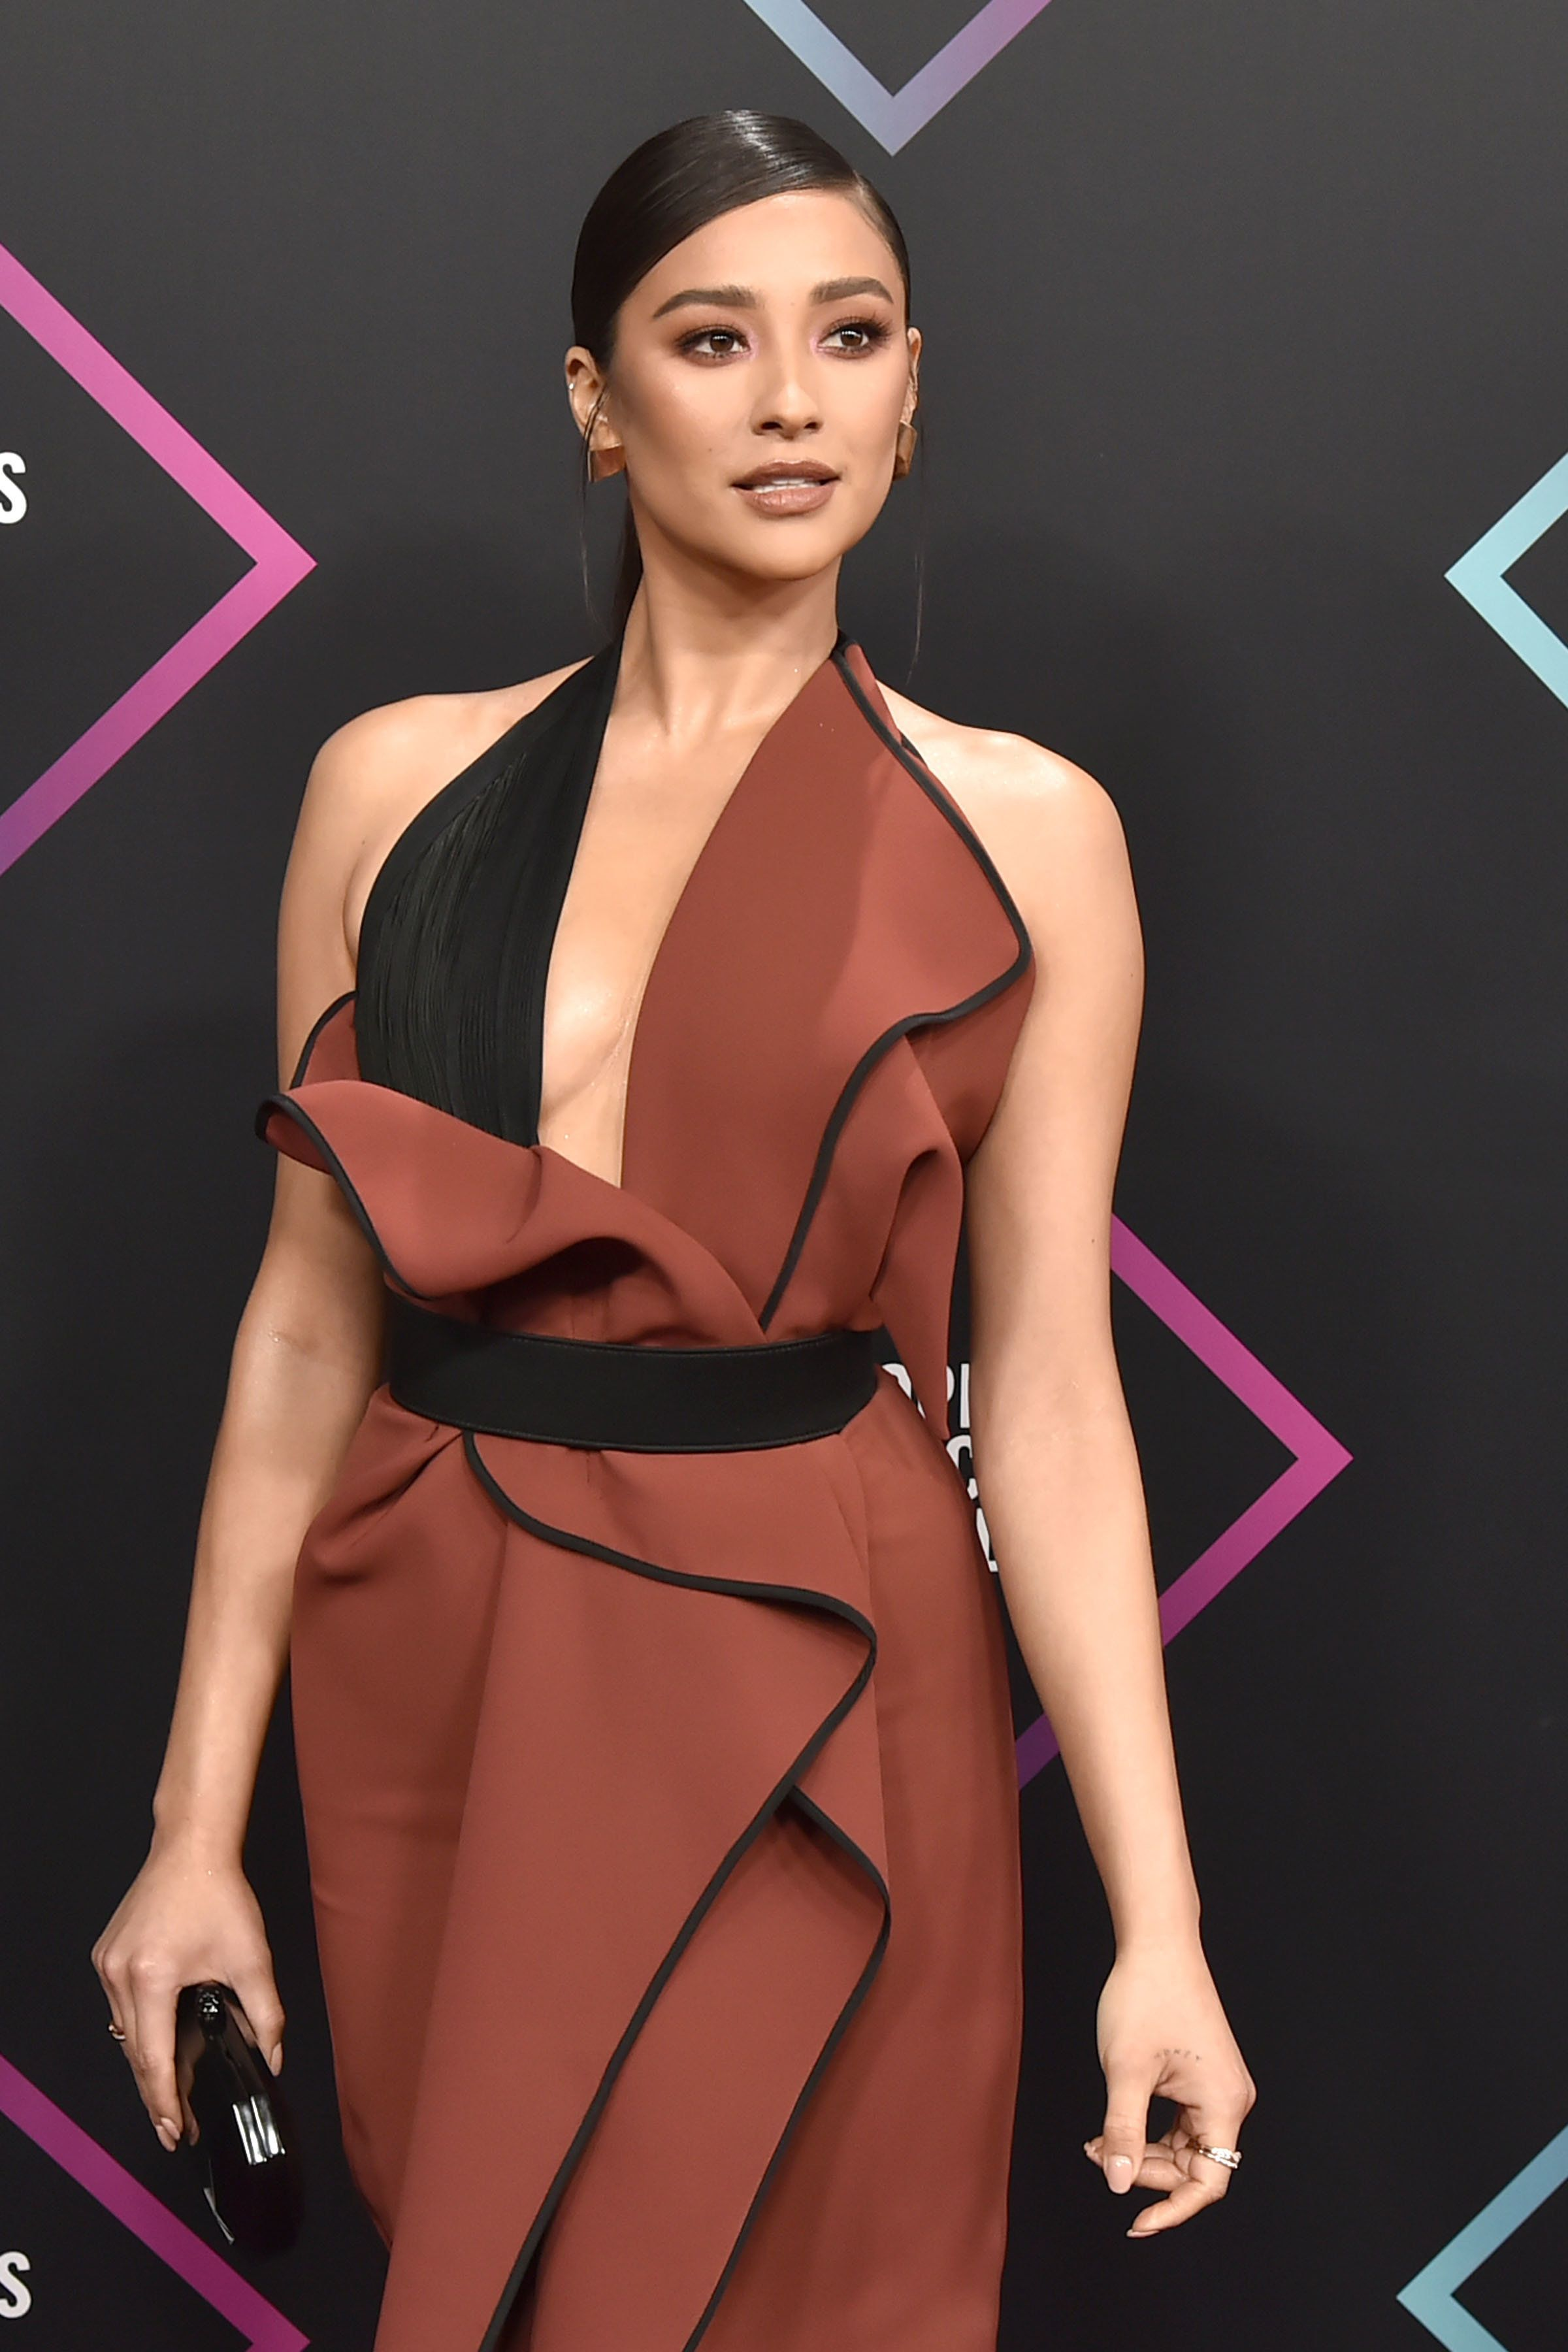 SANTA MONICA, CALIFORNIA - NOVEMBER 11: Shay Mitchell arrives at E! People's Choice Awards at Barker Hangar on November 11, 2018 in Santa Monica, California. (Photo by David Crotty/Patrick McMullan via Getty Images)